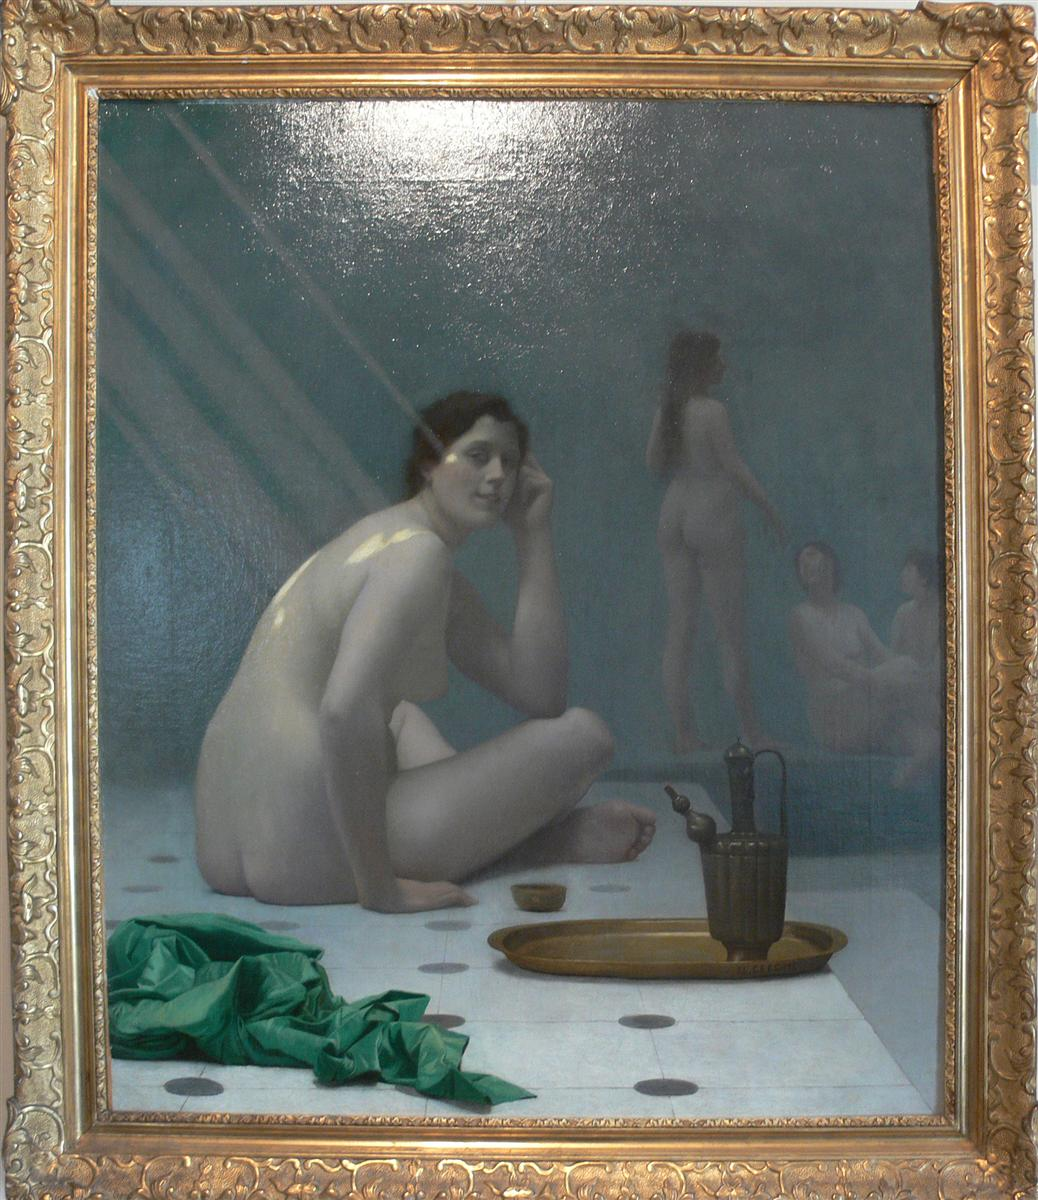 http://uploads7.wikipaintings.org/images/jean-leon-gerome/bathing-women.jpg!HD.jpg